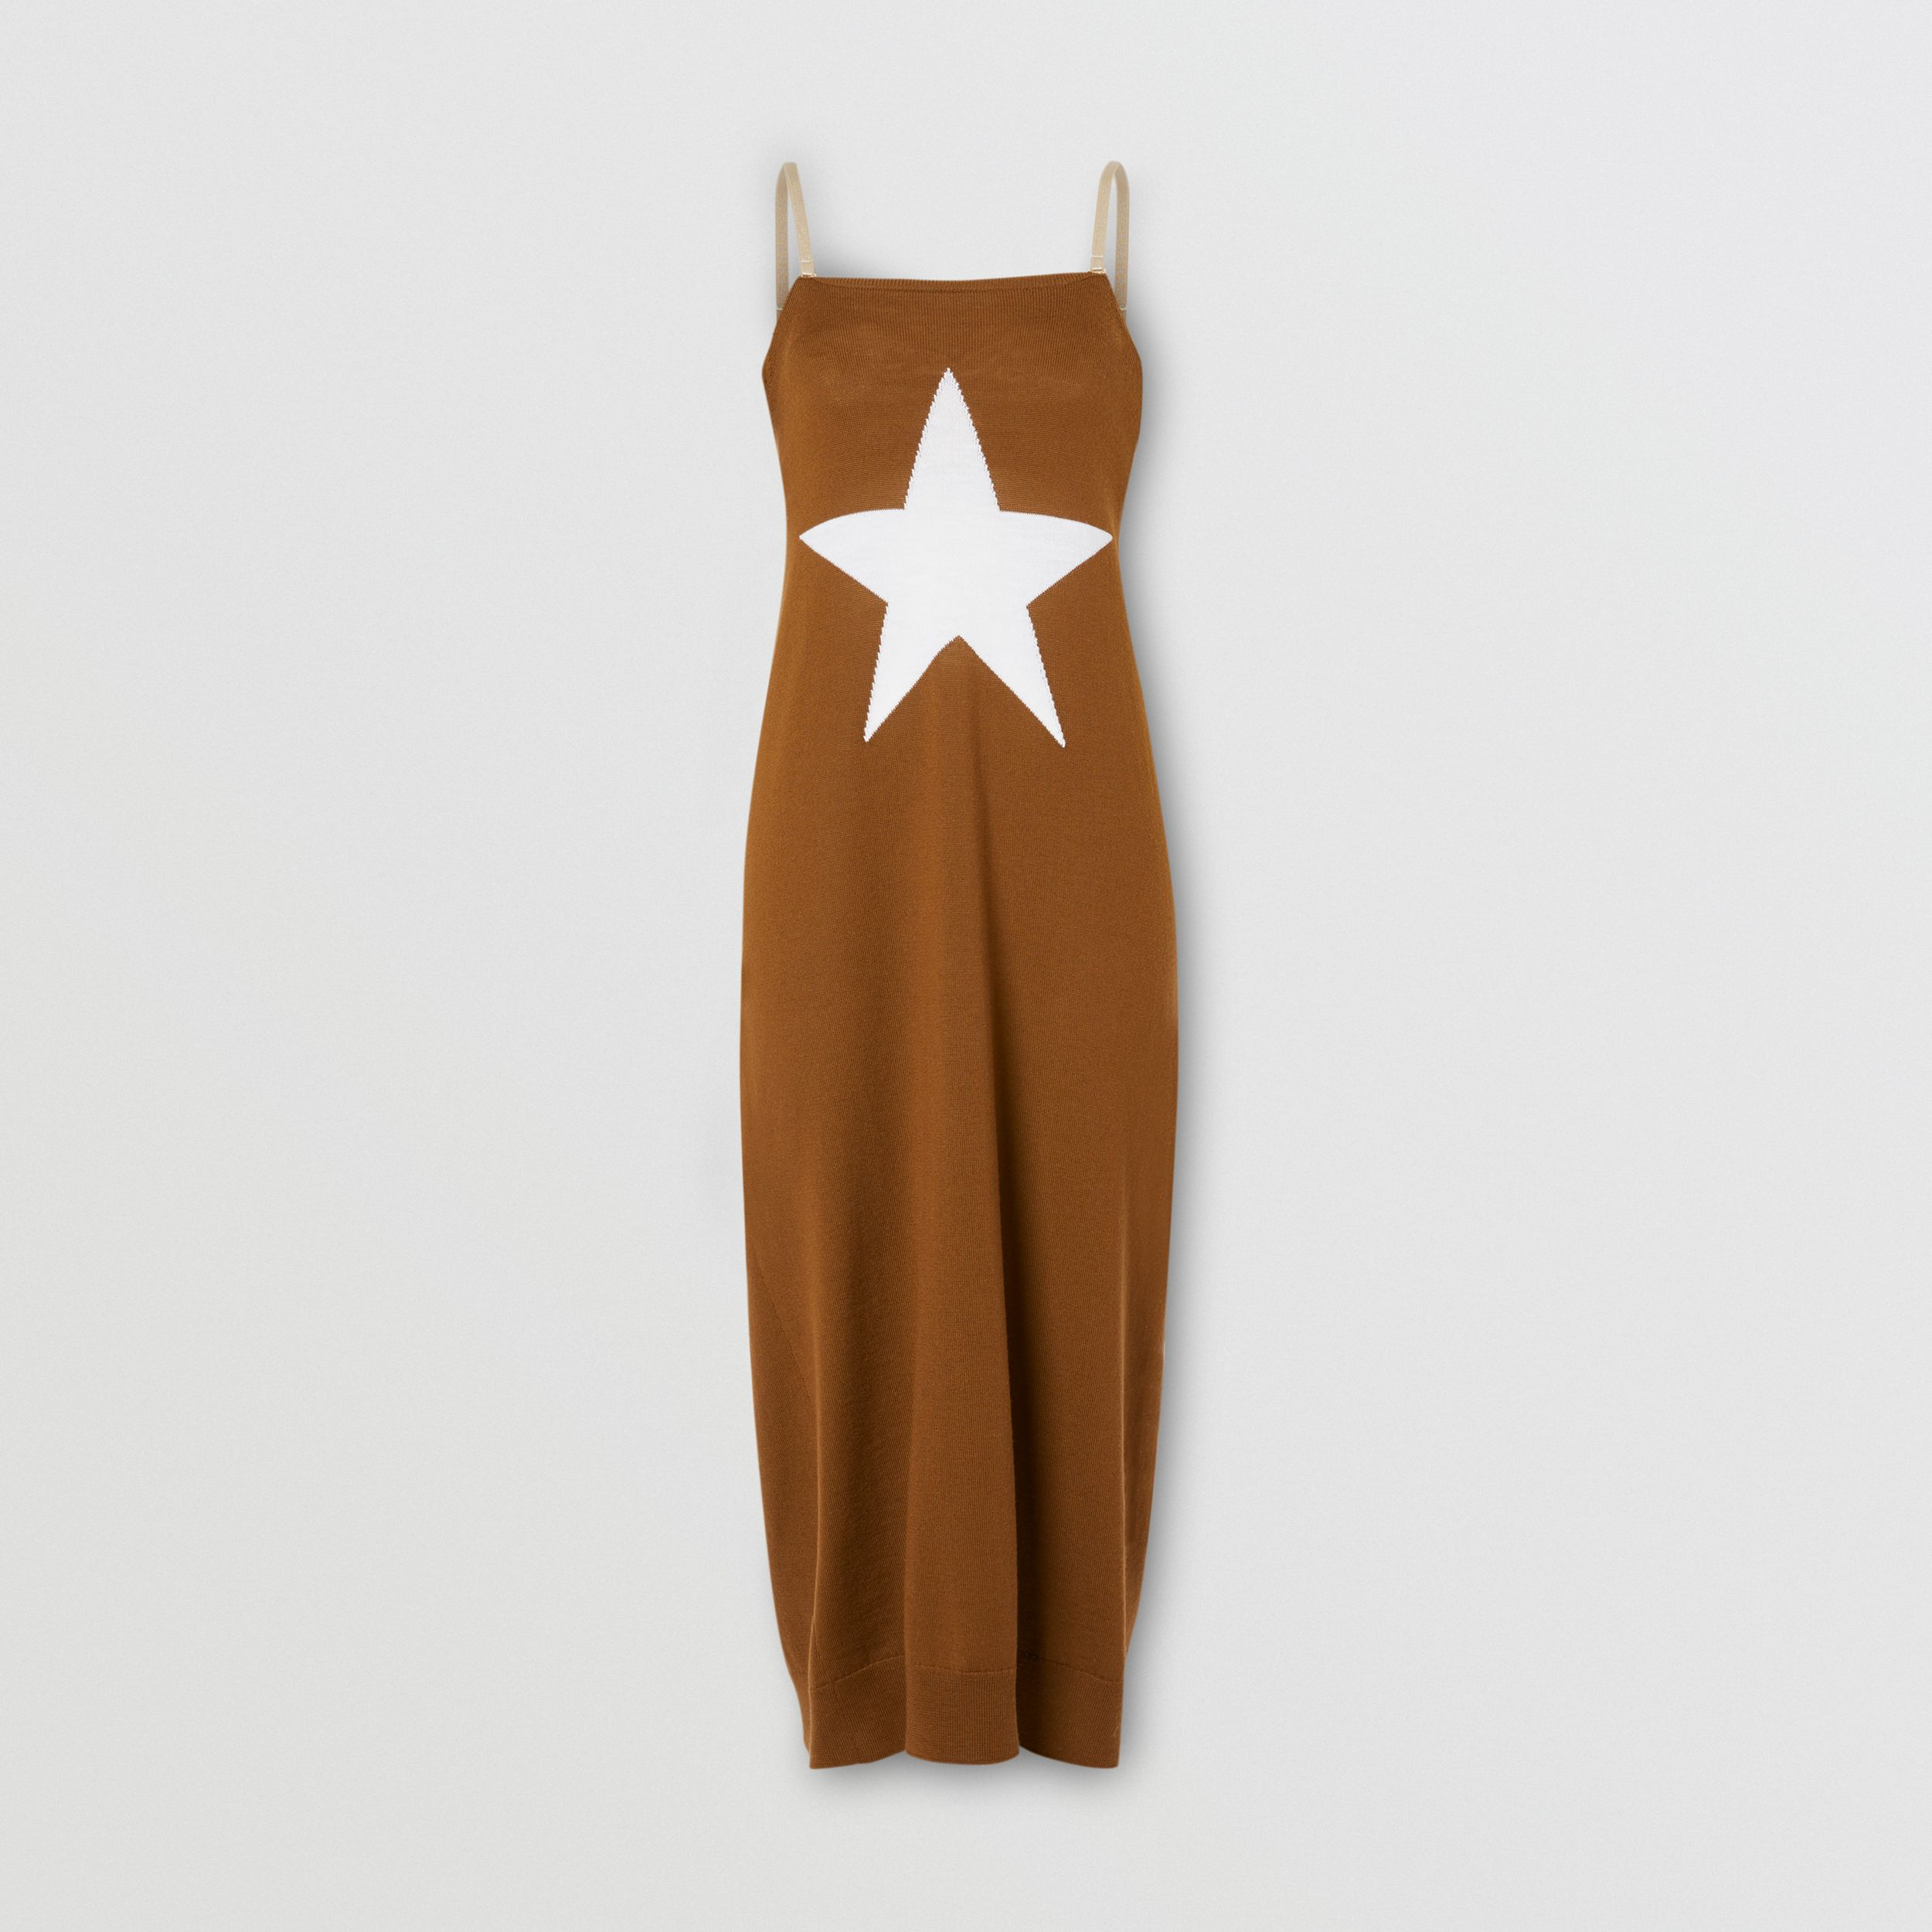 Star Motif Wool Reconstructed Sweater Dress in Mahogany - Women | Burberry - 4